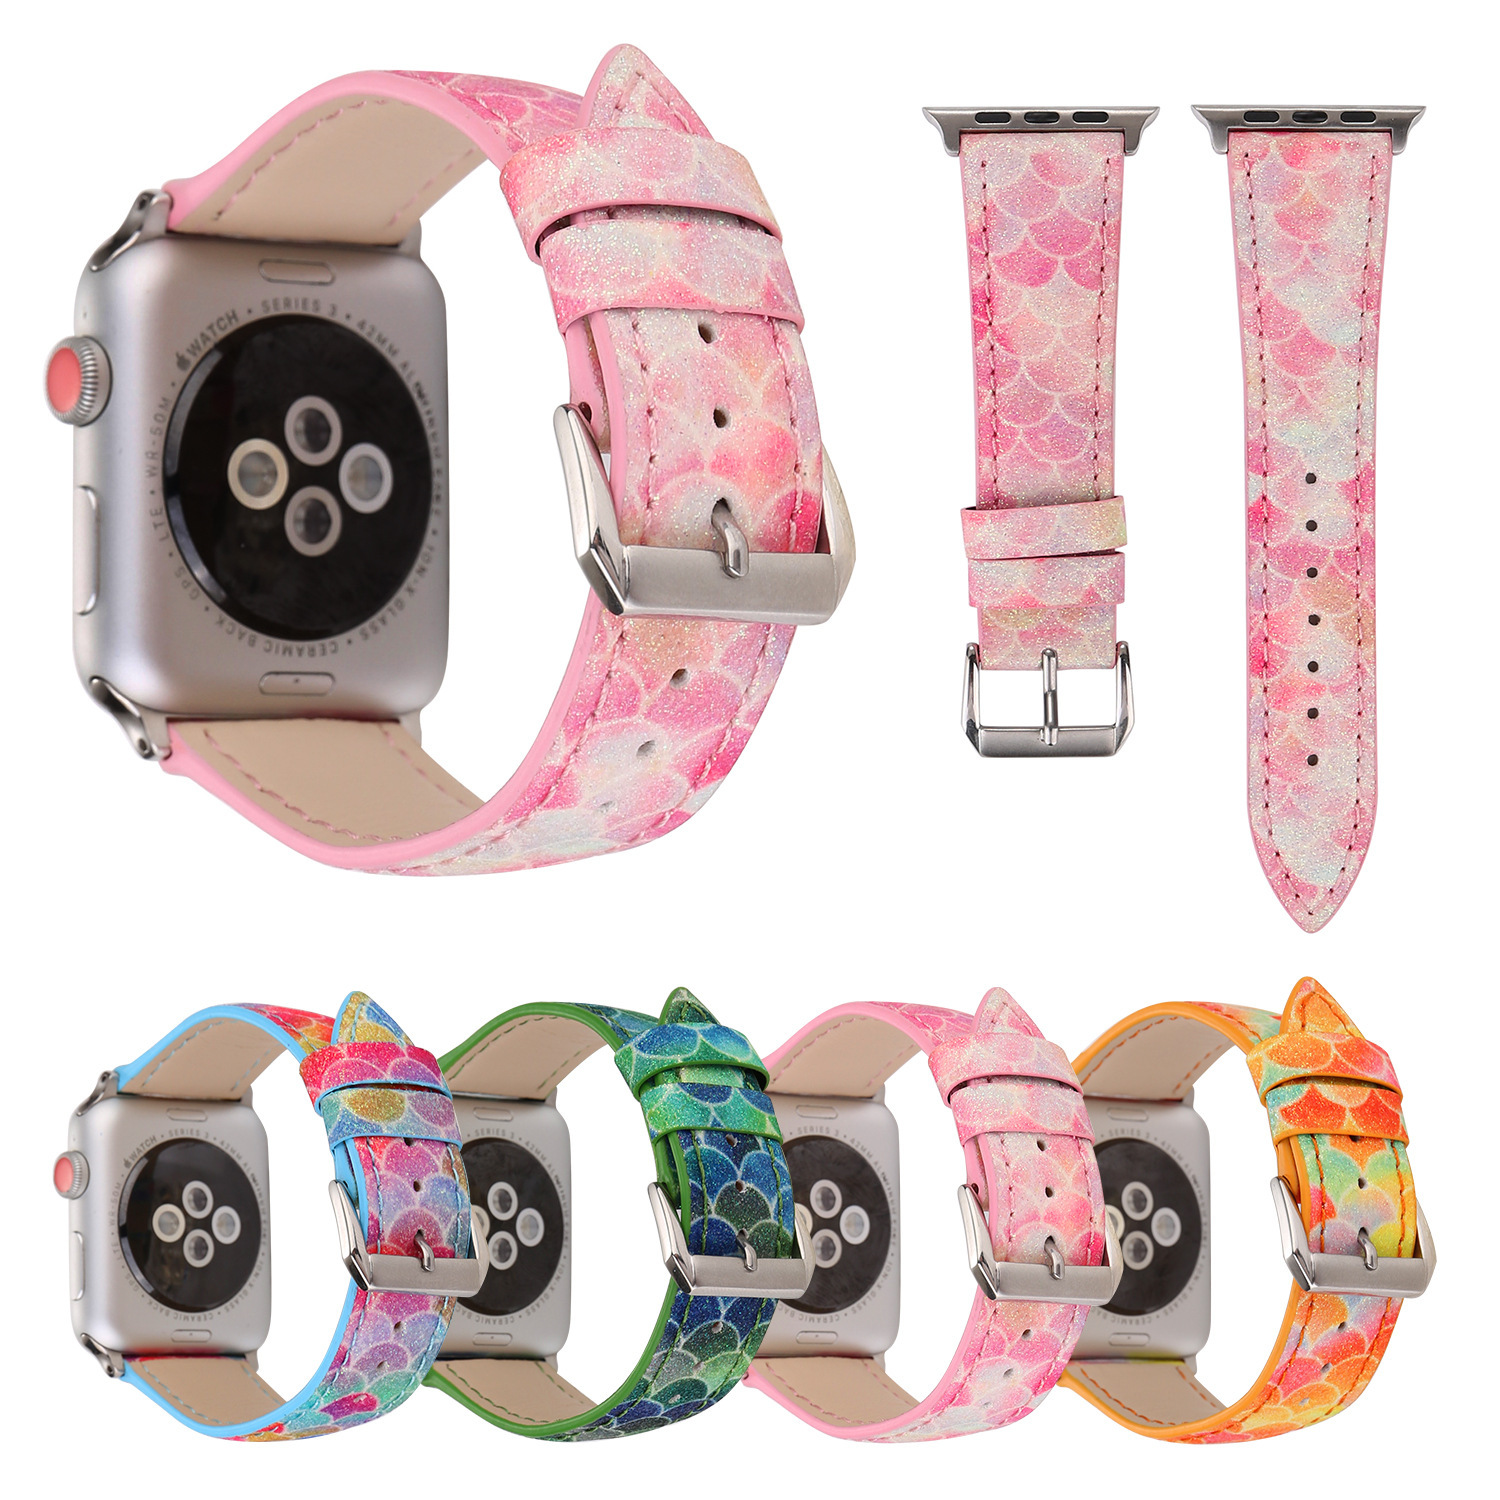 Suitable For Apple IWatch Watch Scale Shimmering Powder Leather Watch Strap Suitable For APPLE Watch Band